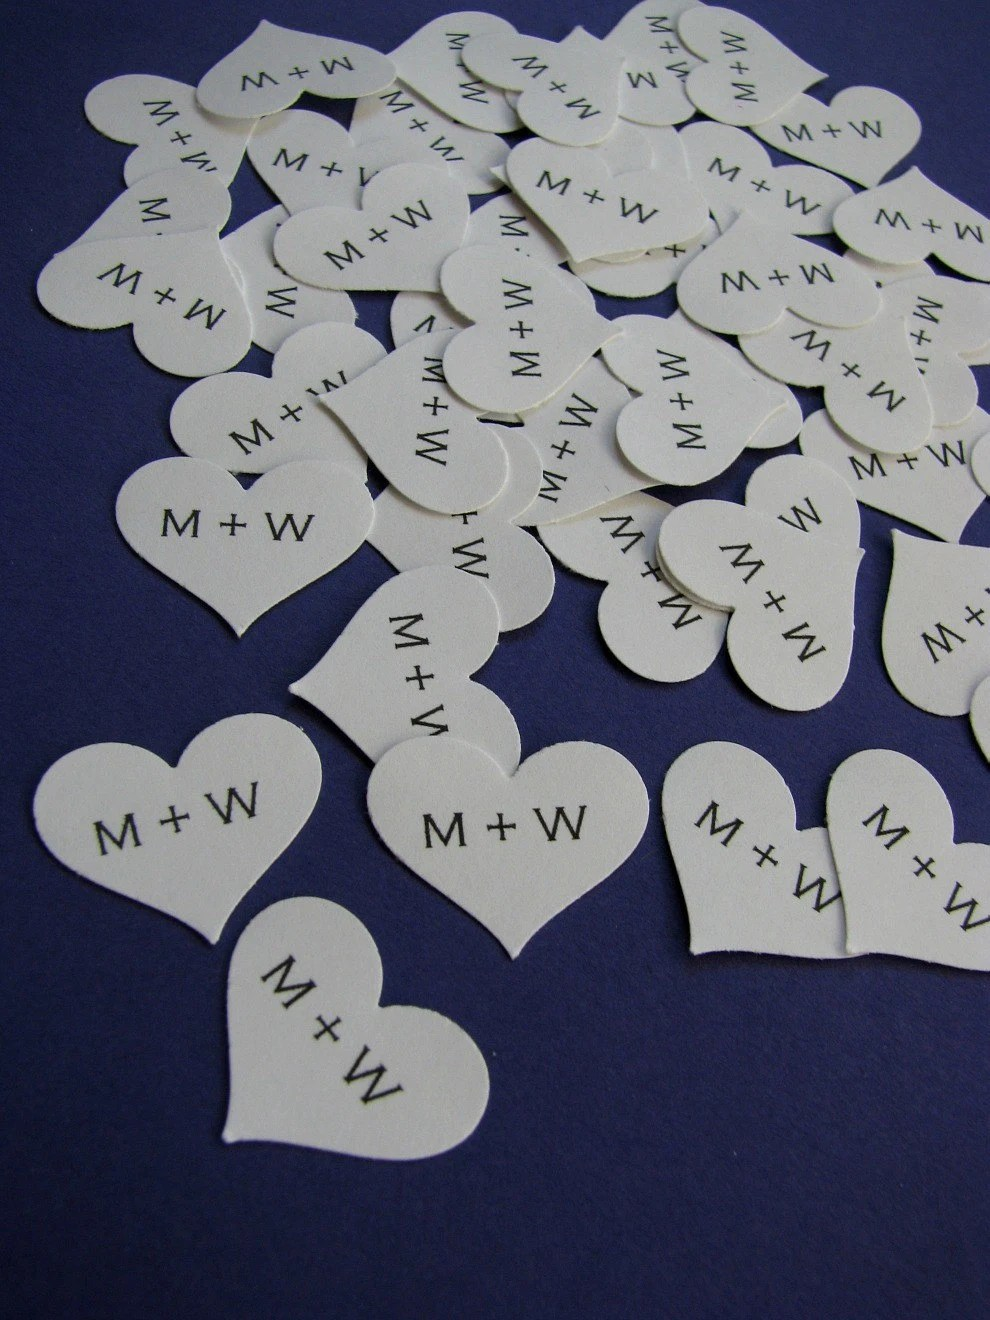 personalized paper heart confetti - pure white